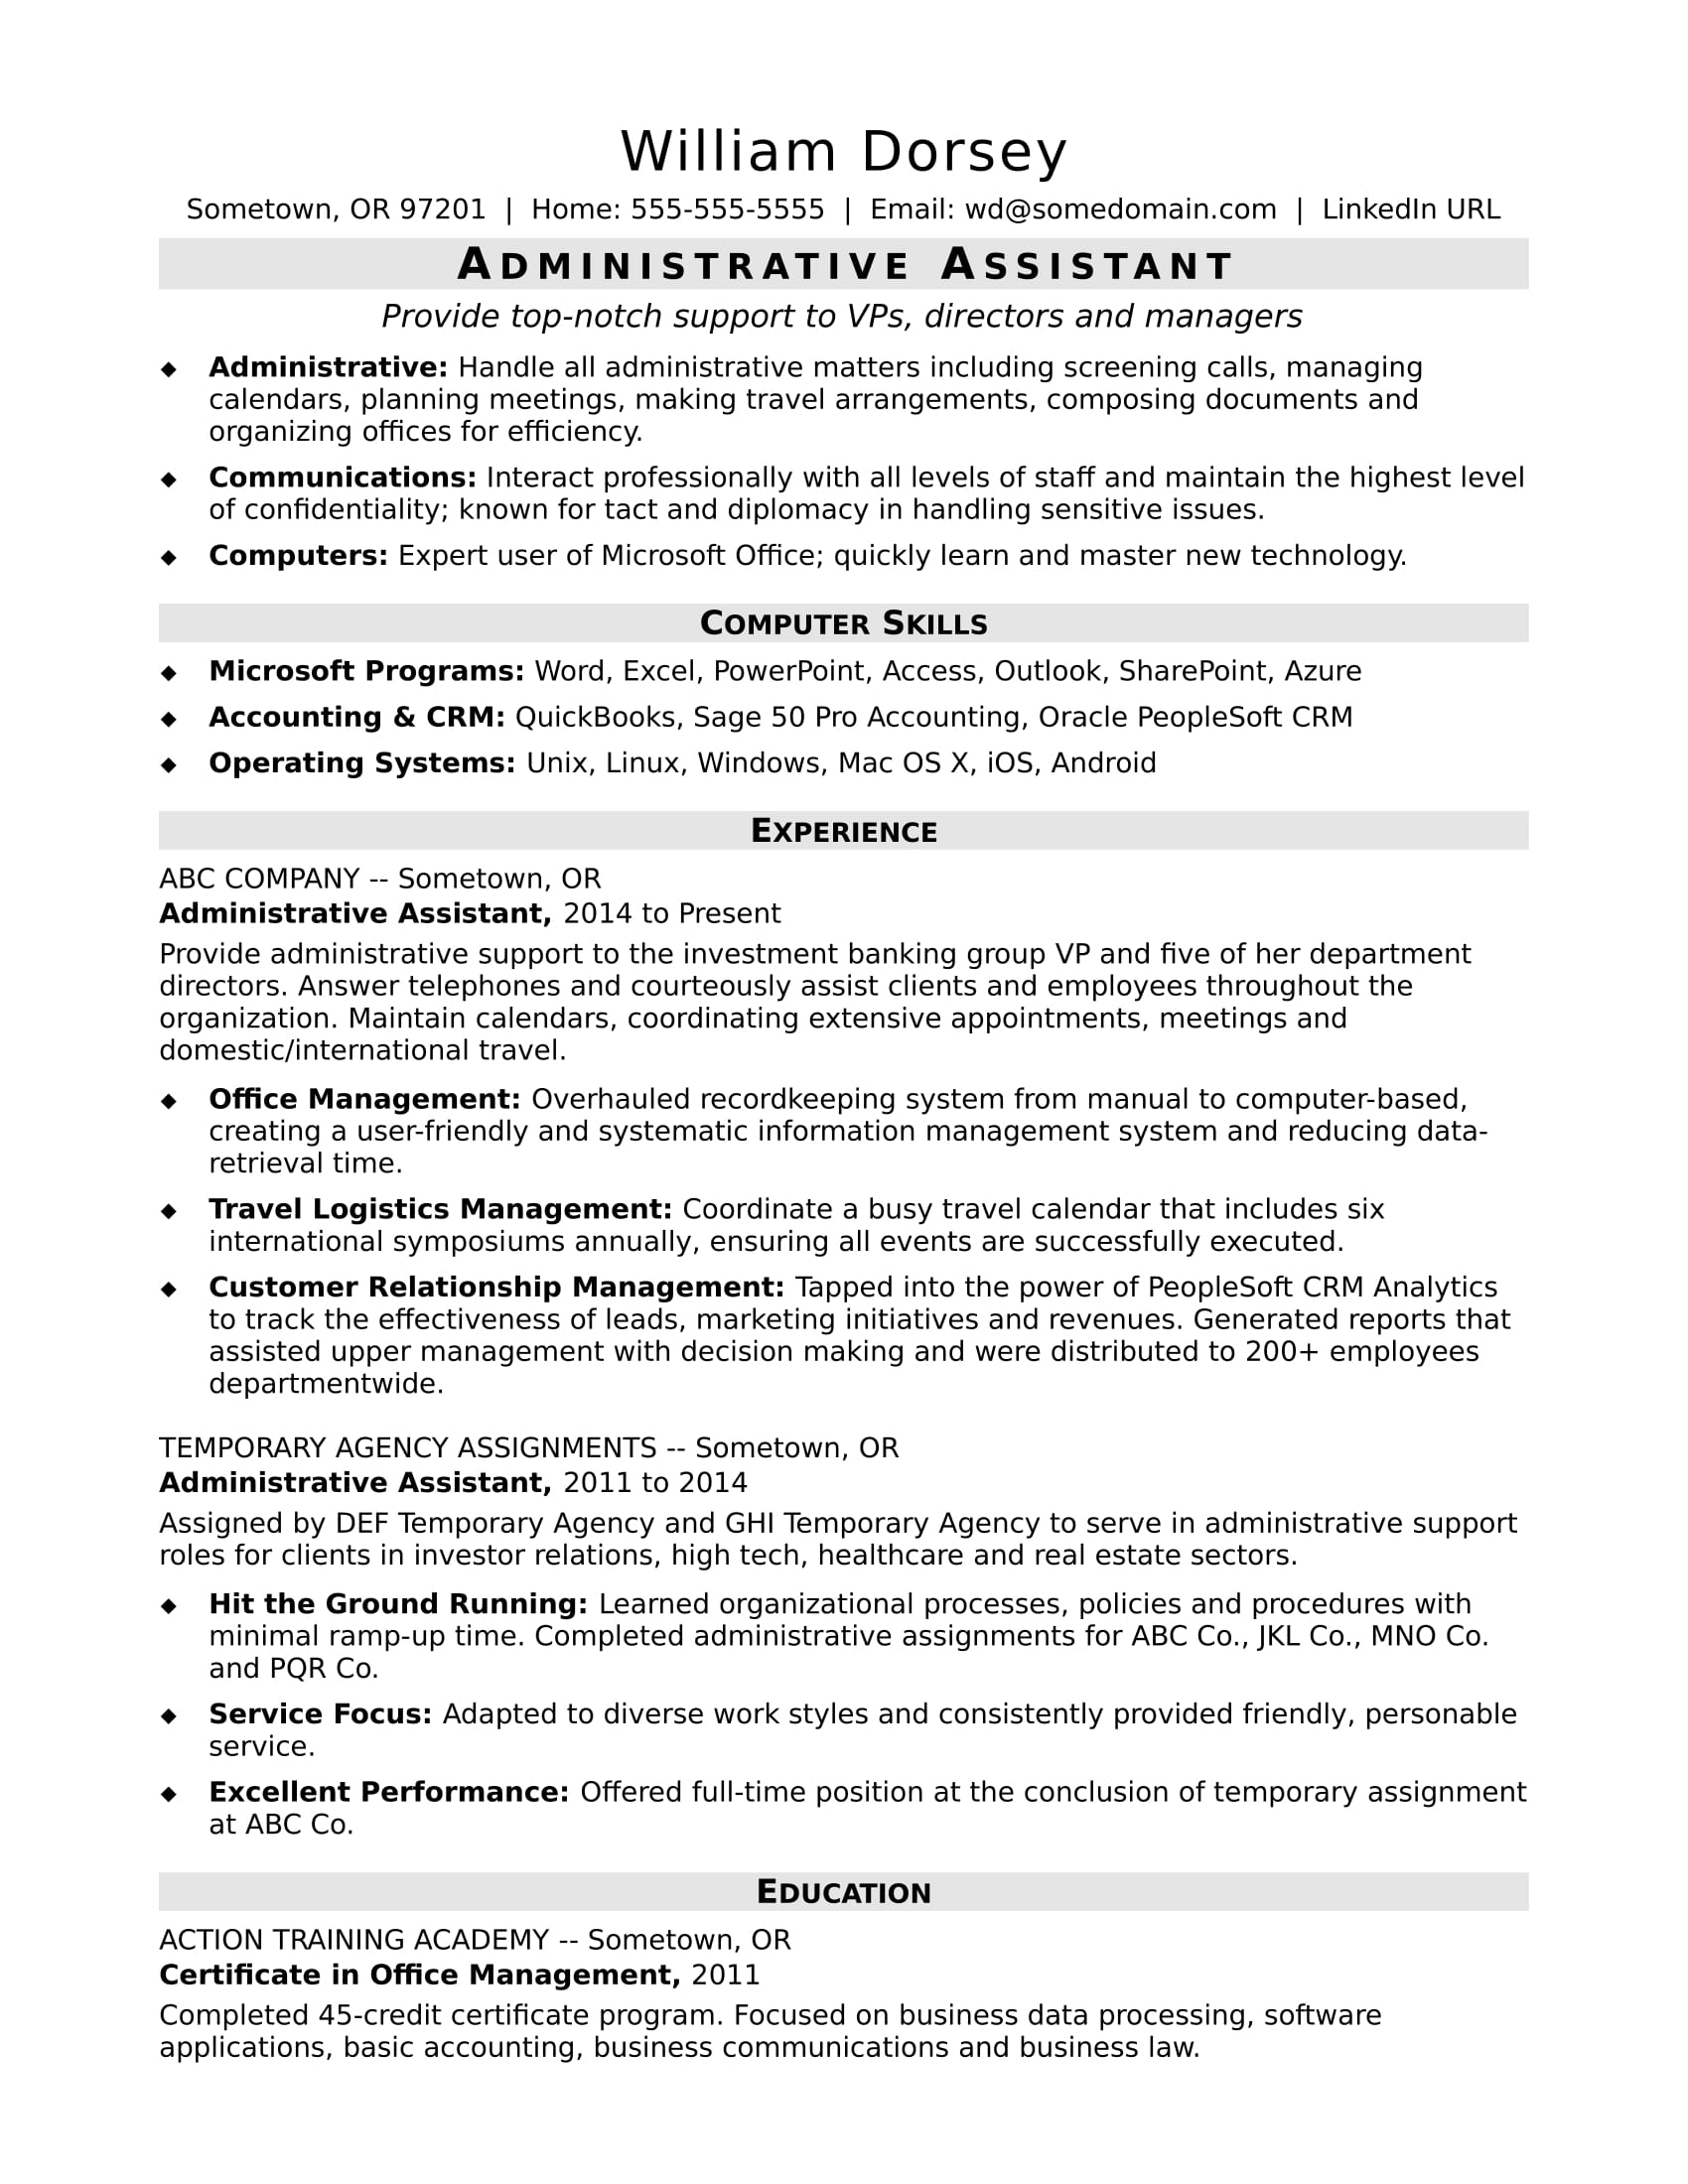 Sample Resume For A Midlevel Administrative Assistant  Office Assistant Sample Resume